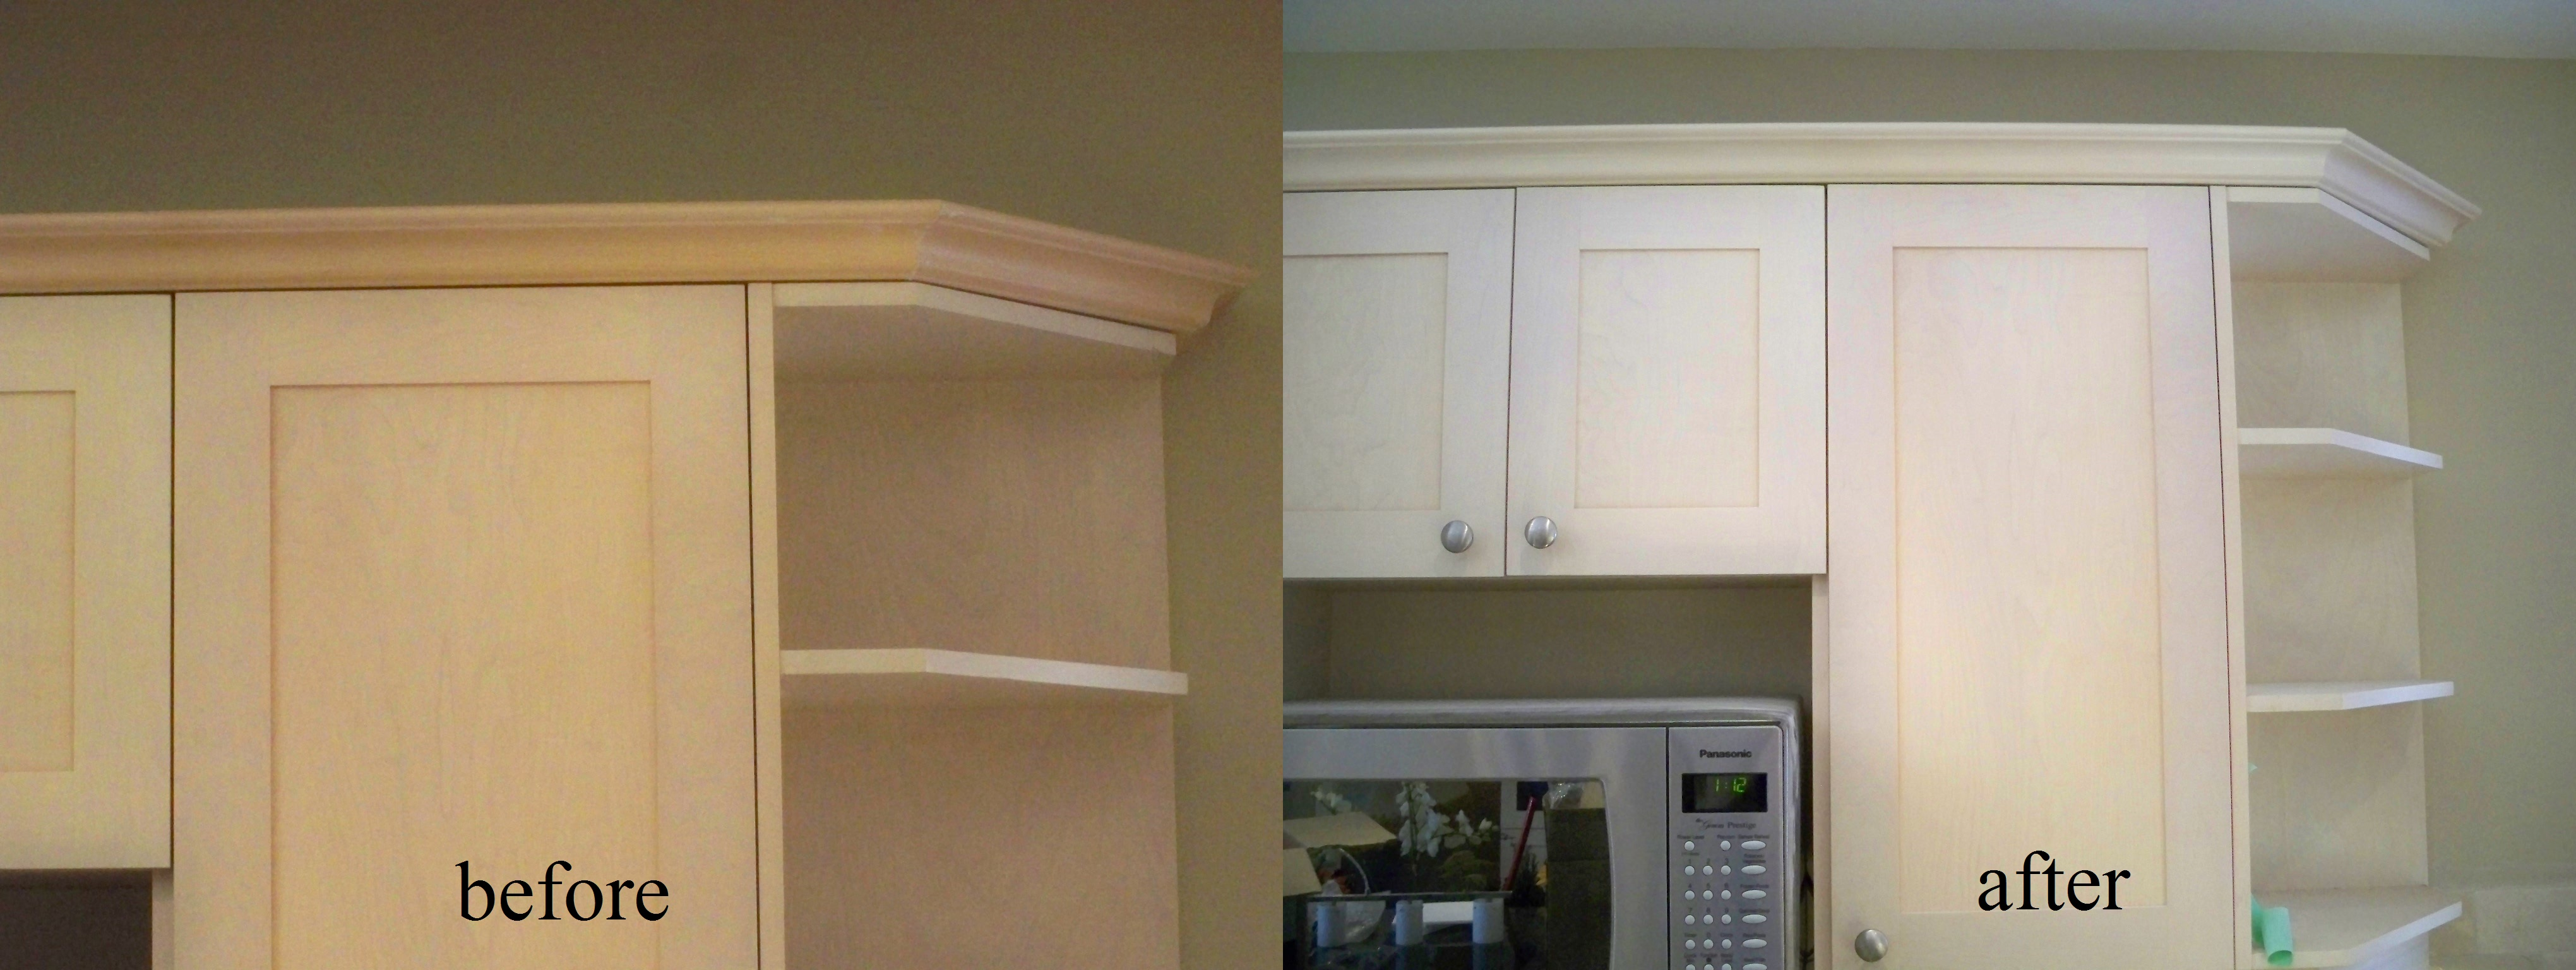 Murals By Marg Painted Kitchen Cabinet repair.jpg